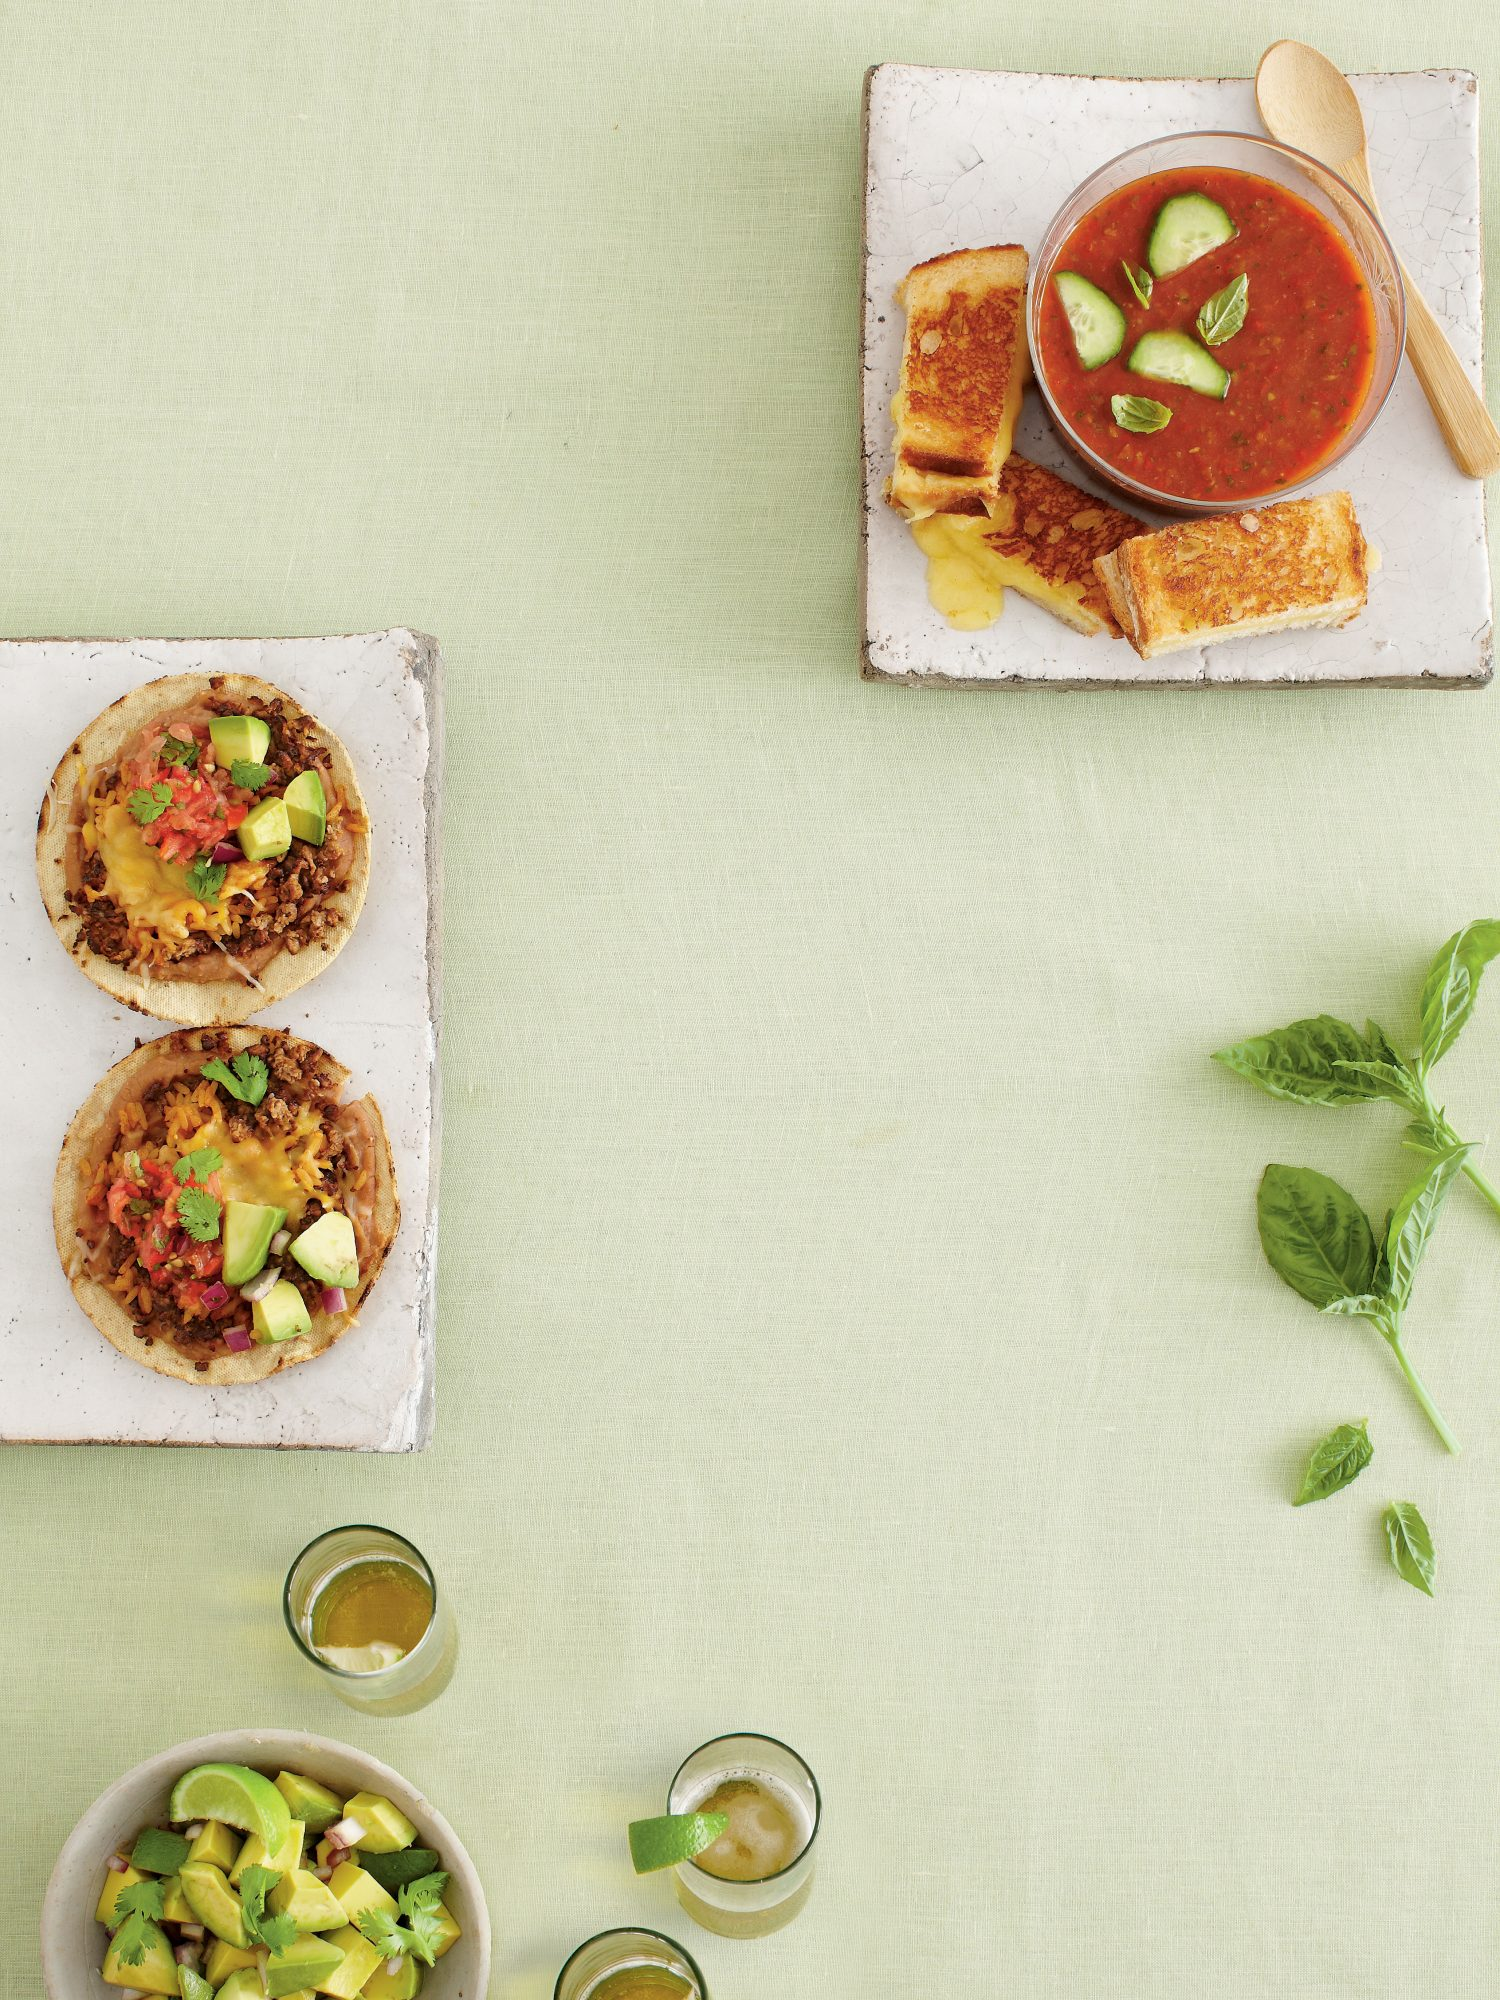 Mexicali Meatless Tostadas